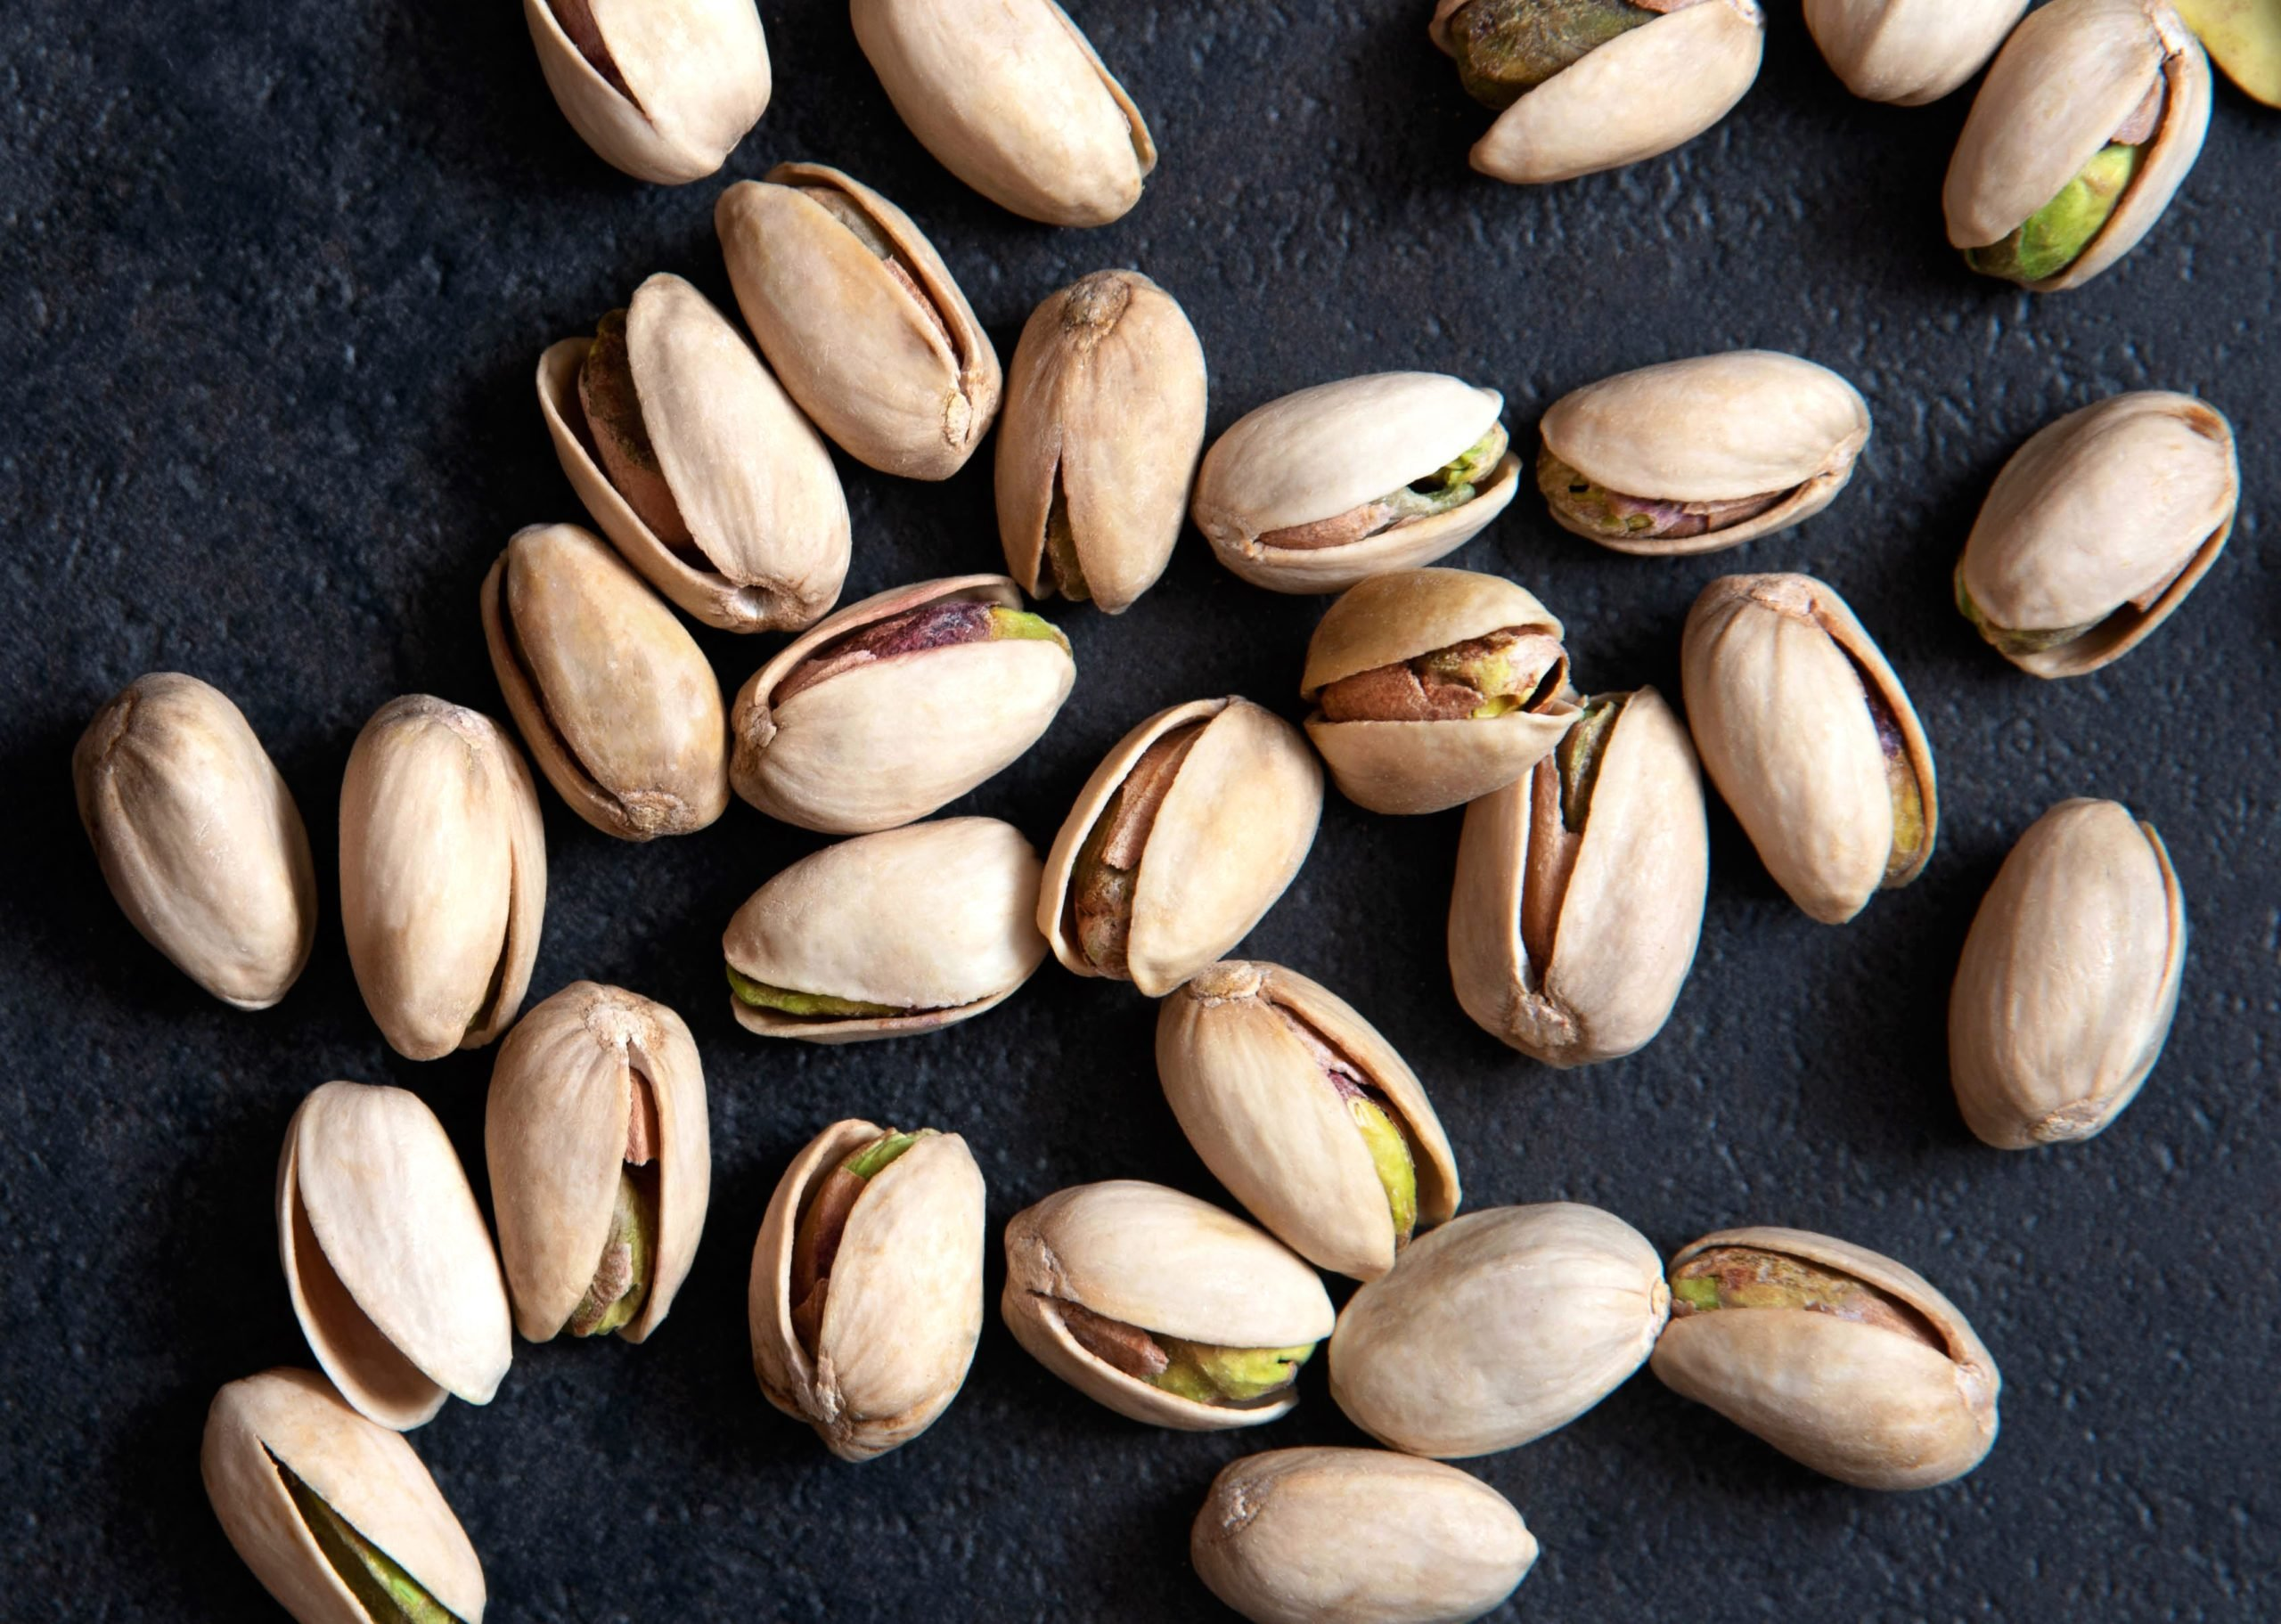 Roasted pistachios nuts on dark background